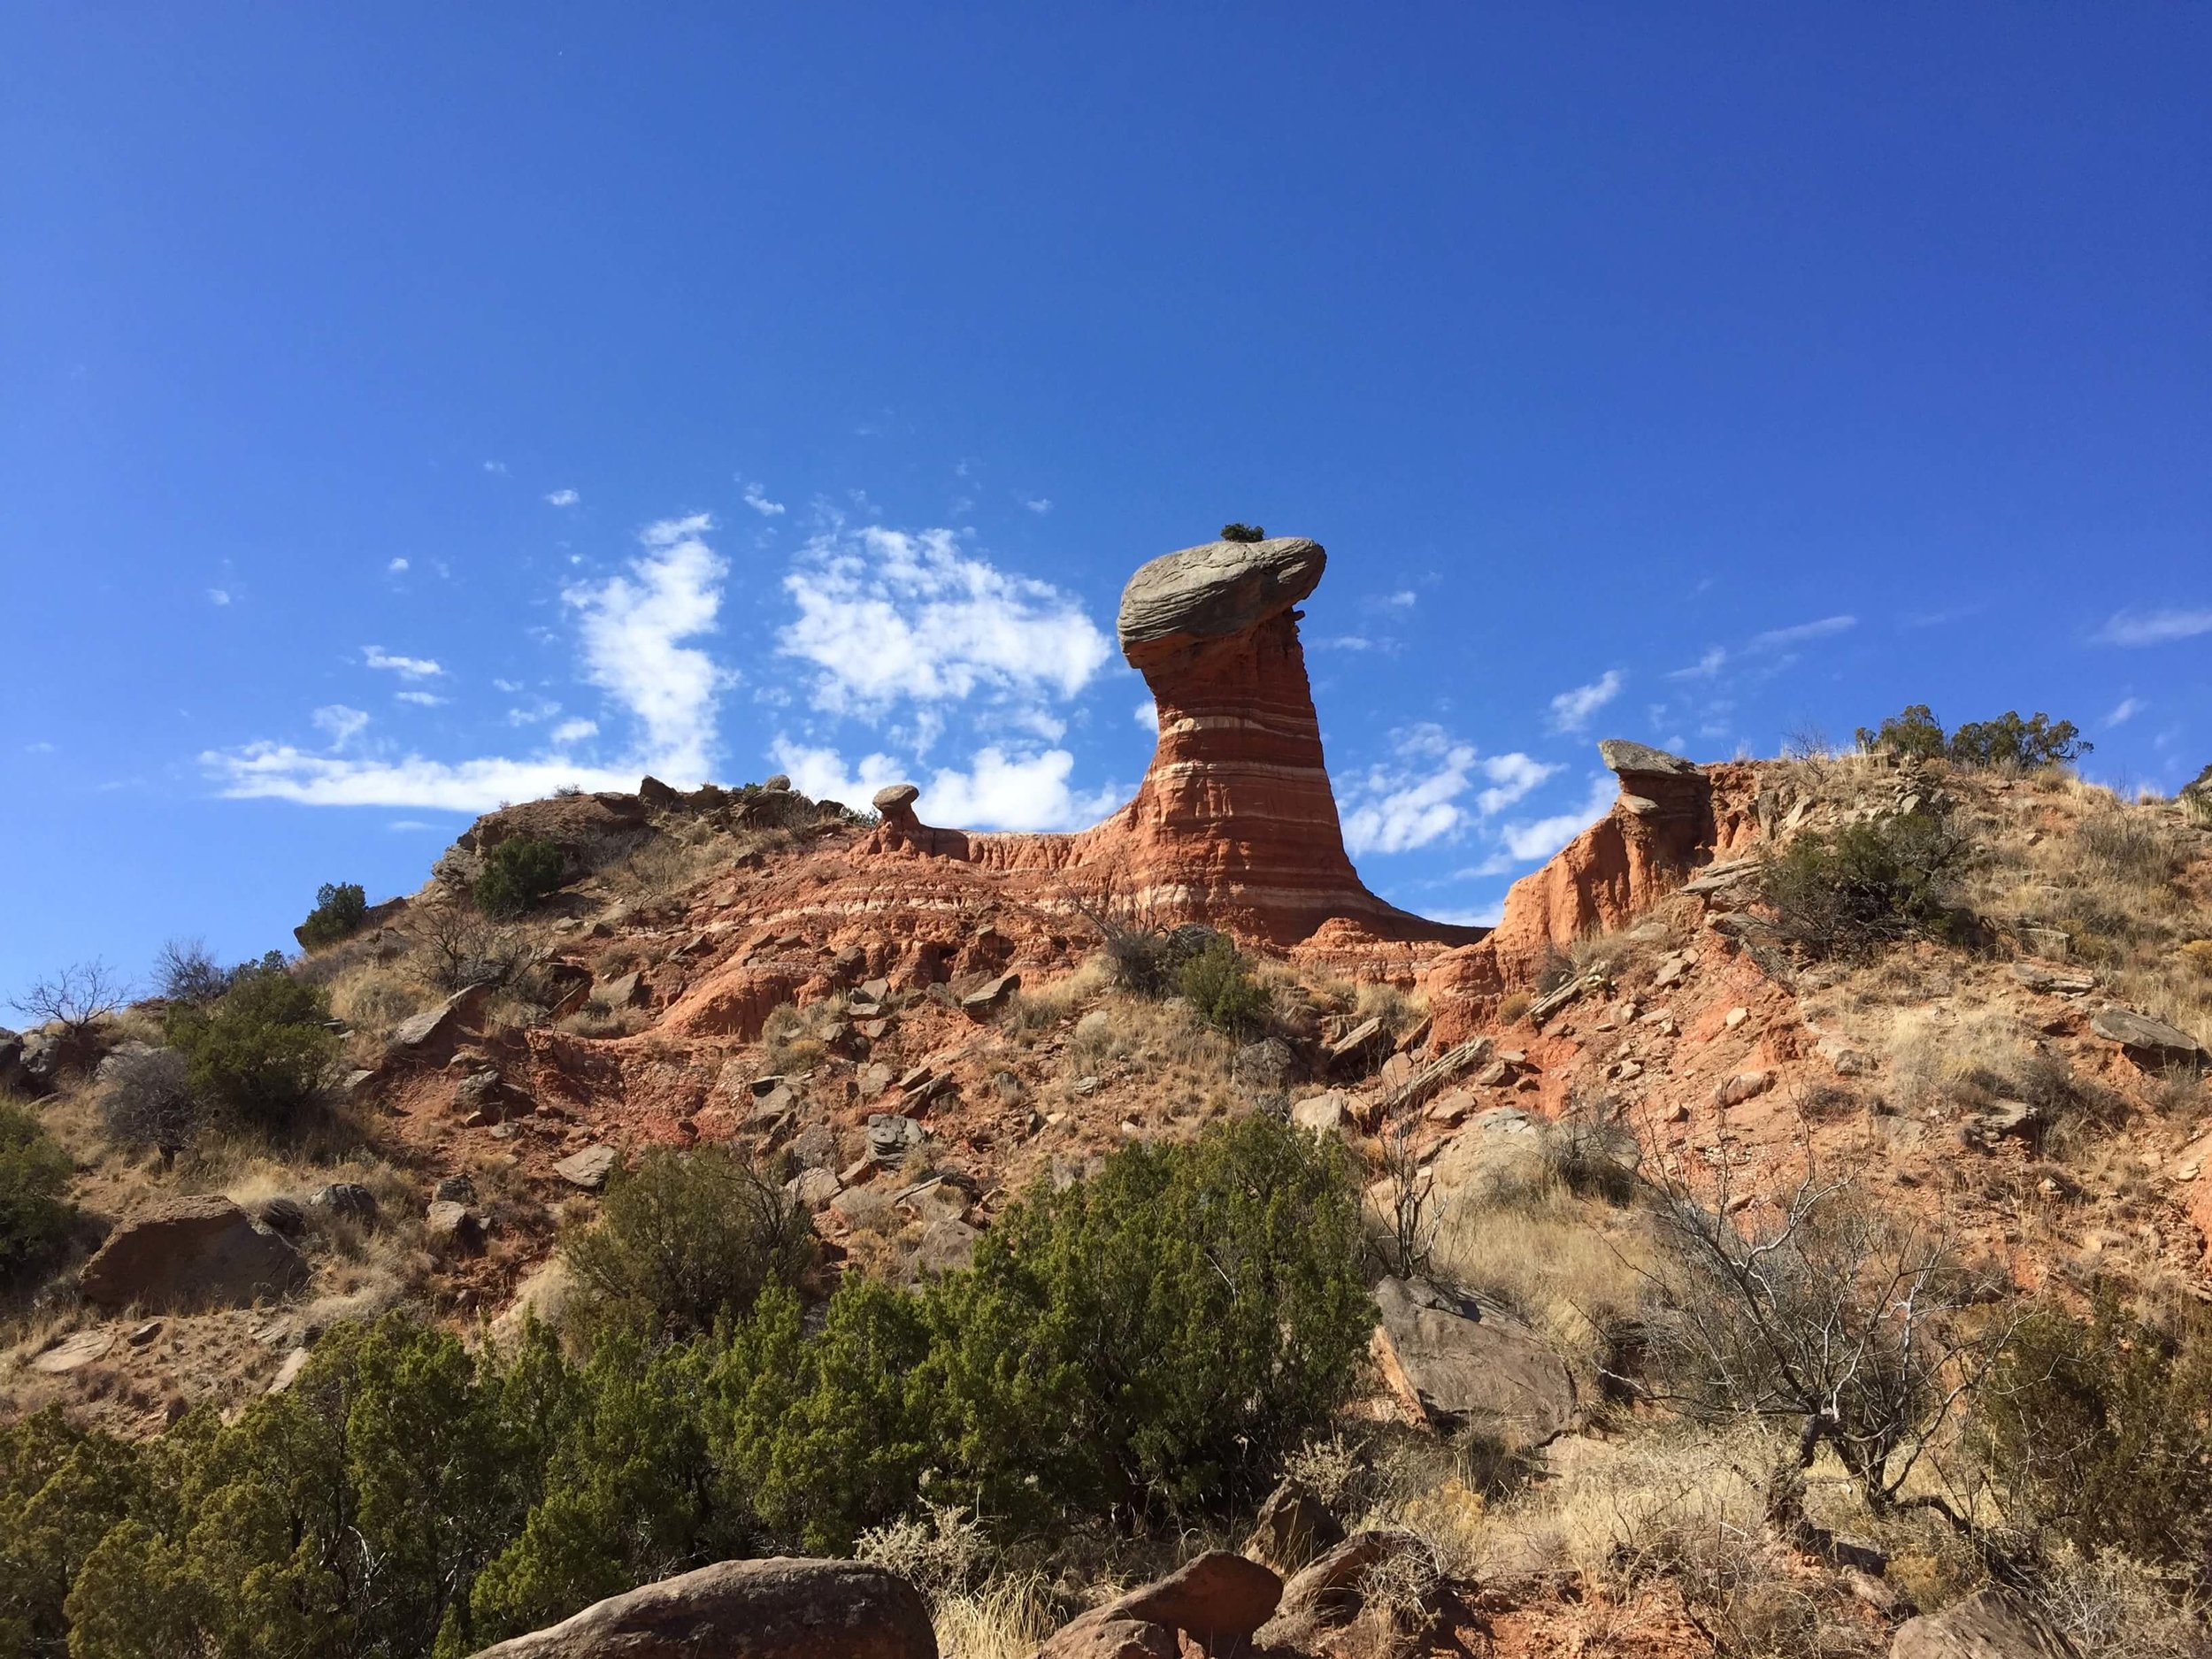 An impressively large mushroom formation on the Givens, Spicer, and Lowry Trail in Palo Duro Canyon State Park.